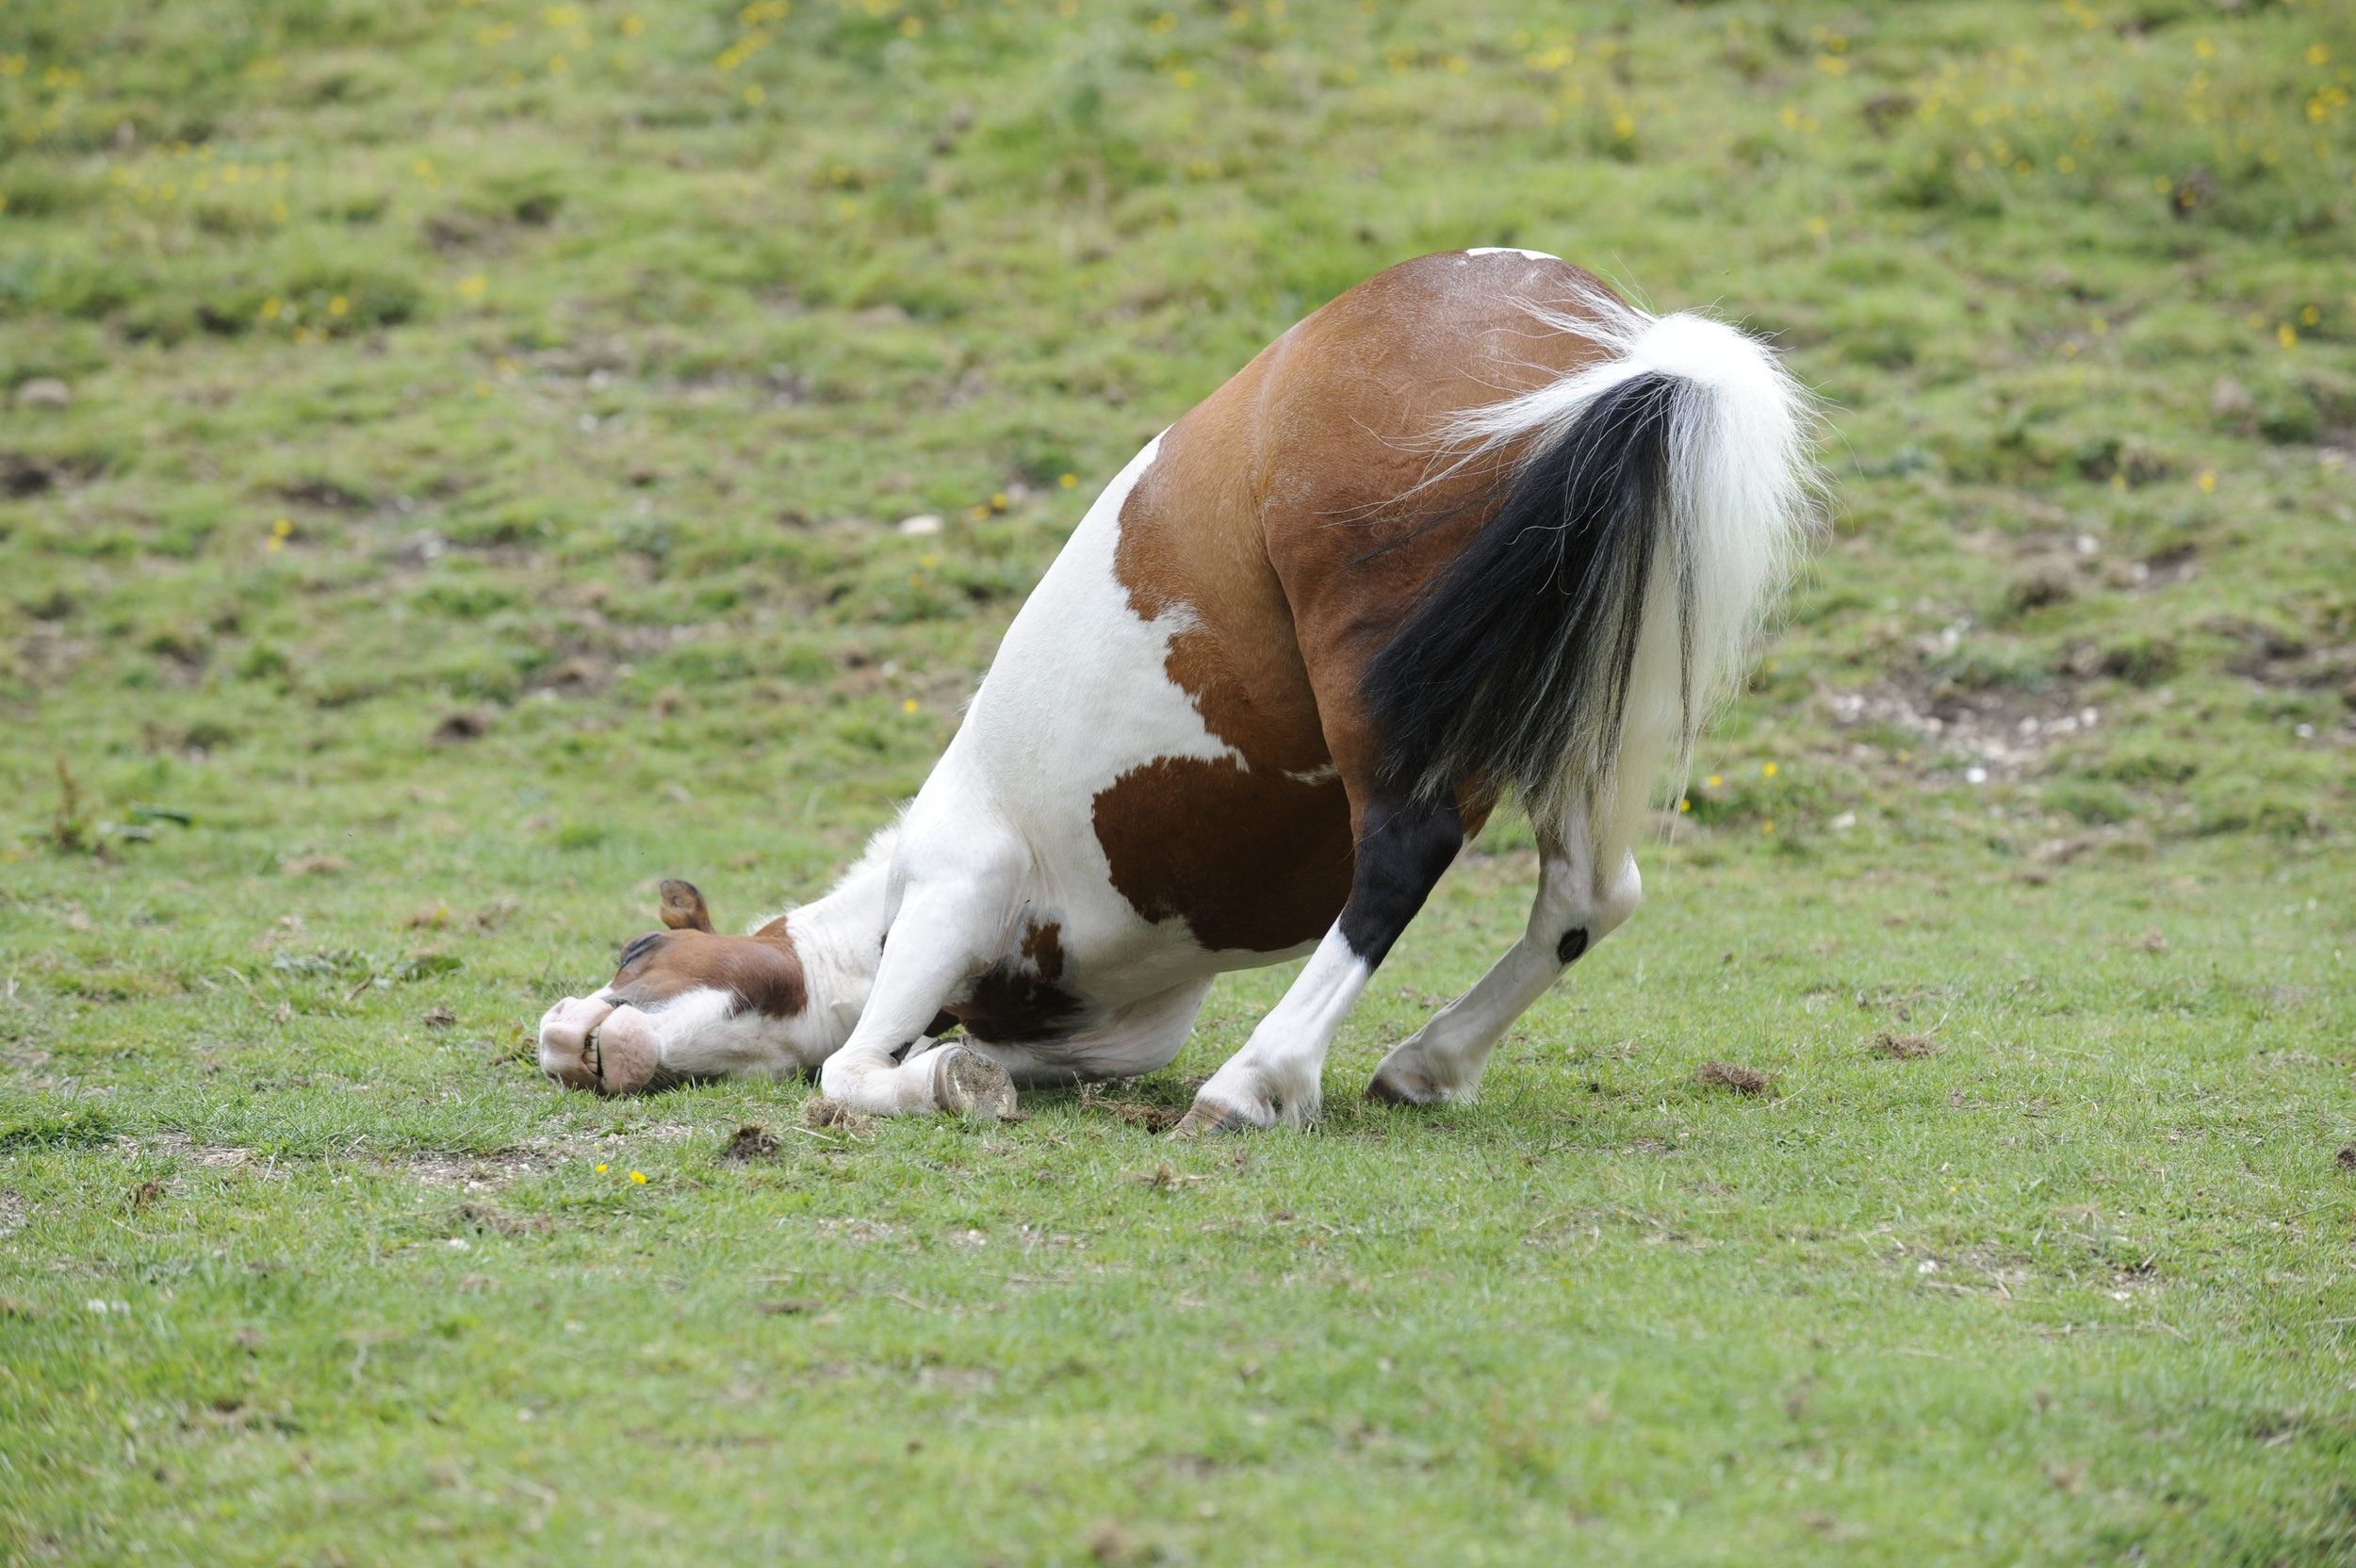 While there are many symptoms, signs of severe colic can include rolling